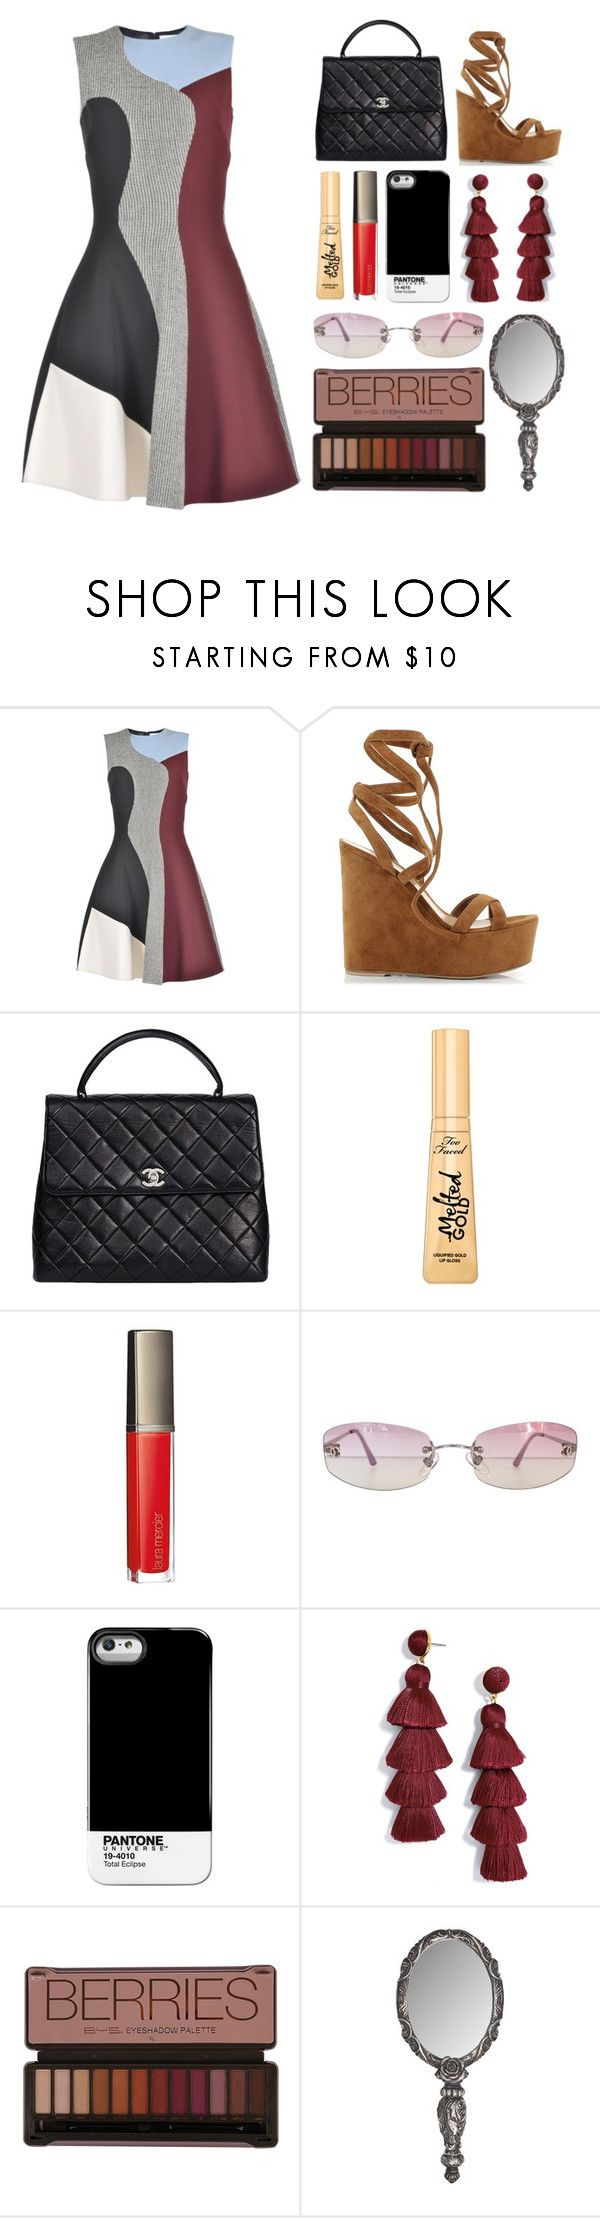 """""""7.091"""" by katrinattack ❤ liked on Polyvore featuring Victoria Beckham, Gianvito Rossi, Chanel, Too Faced Cosmetics, Laura Mercier, Pantone Universe, BaubleBar, wedding and polyvorefashion"""